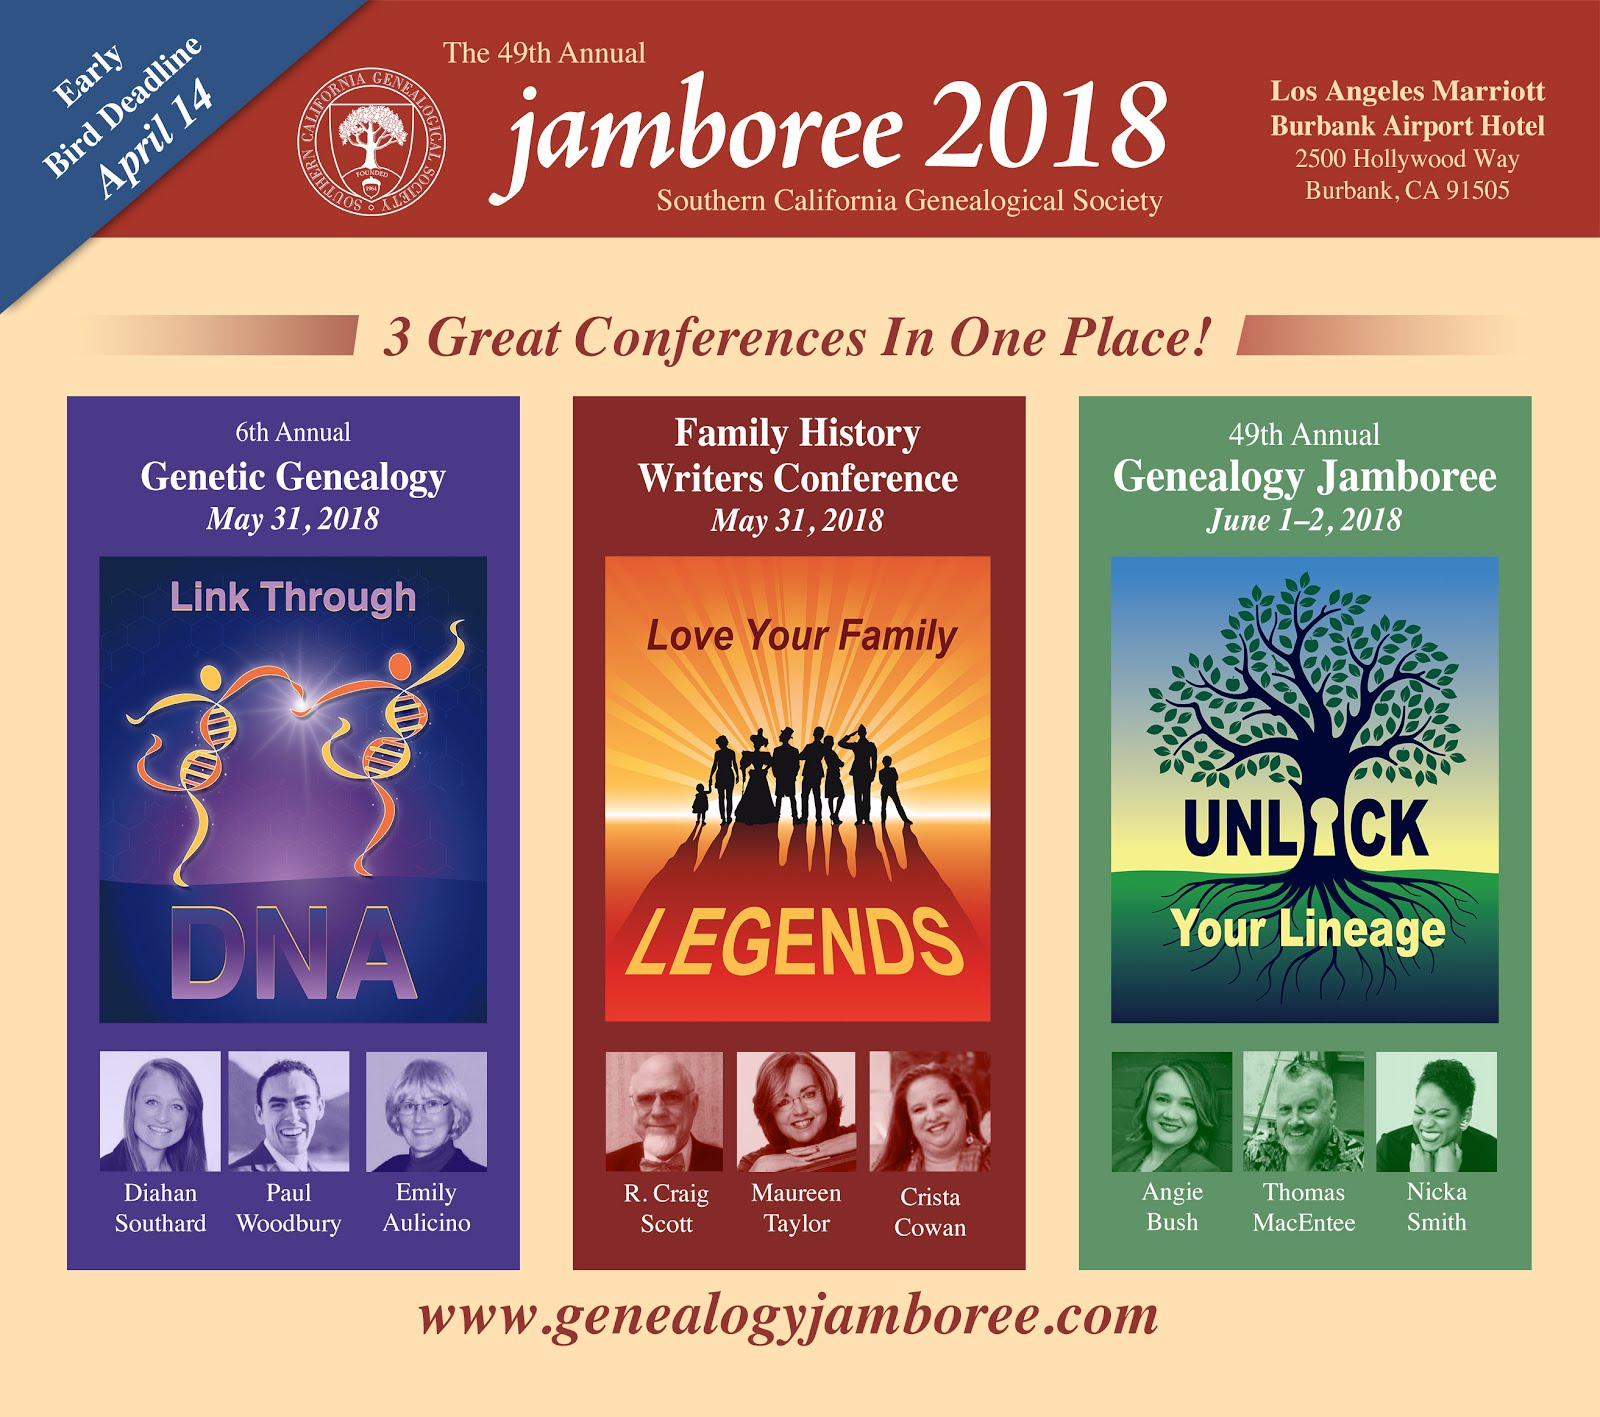 JAMBOREE 2018 - YOU DON'T WANT TO MISS THIS!